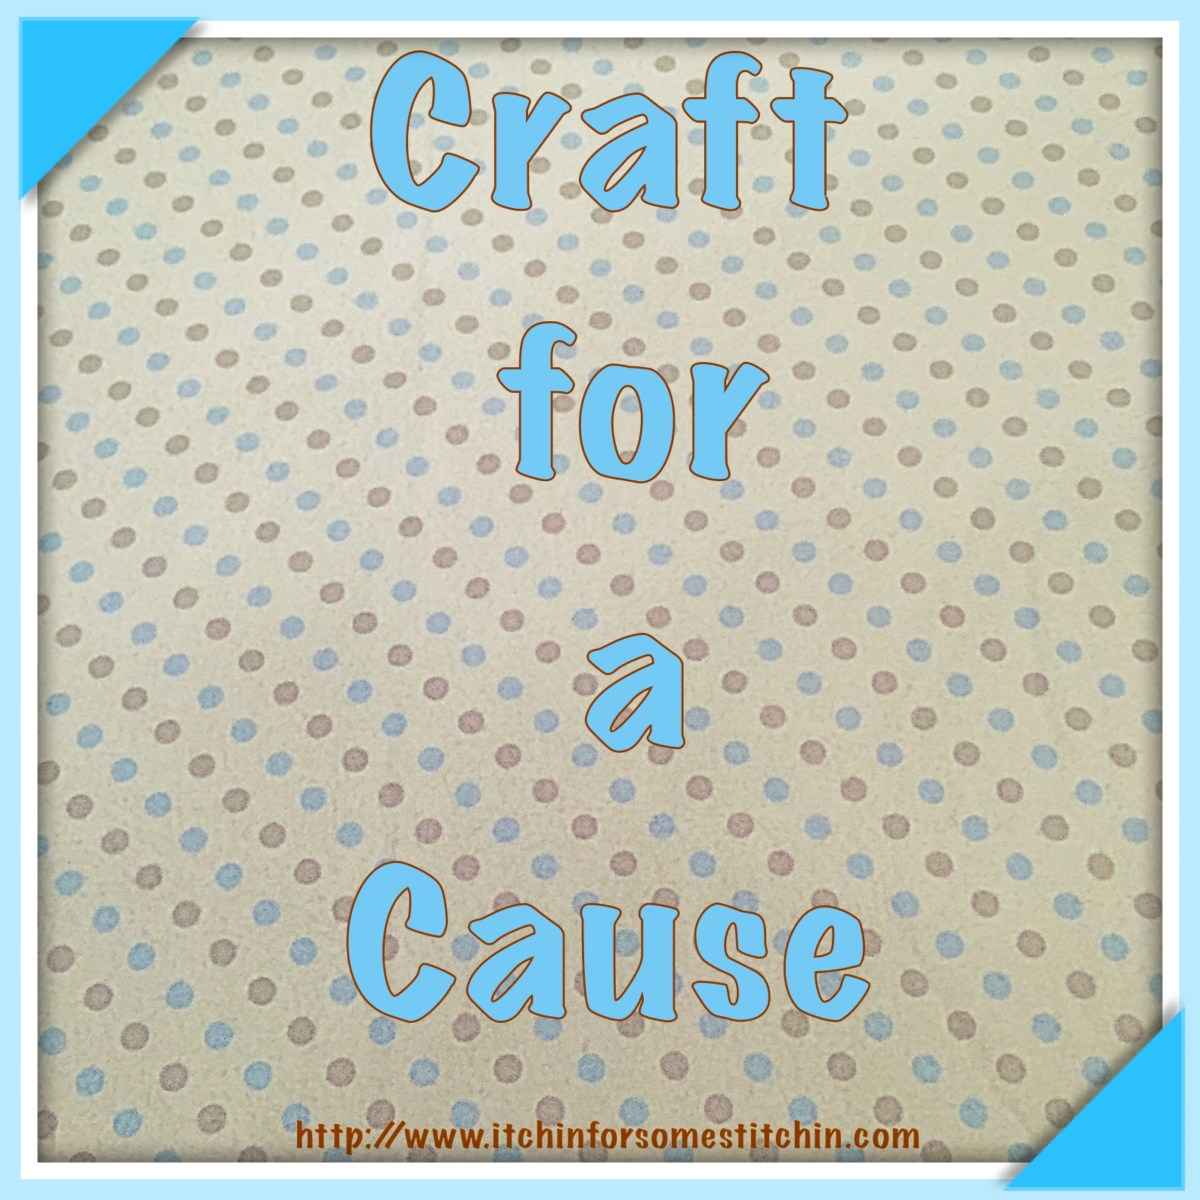 Craft for a Cause. http://www.itchinforsomestitchin.com